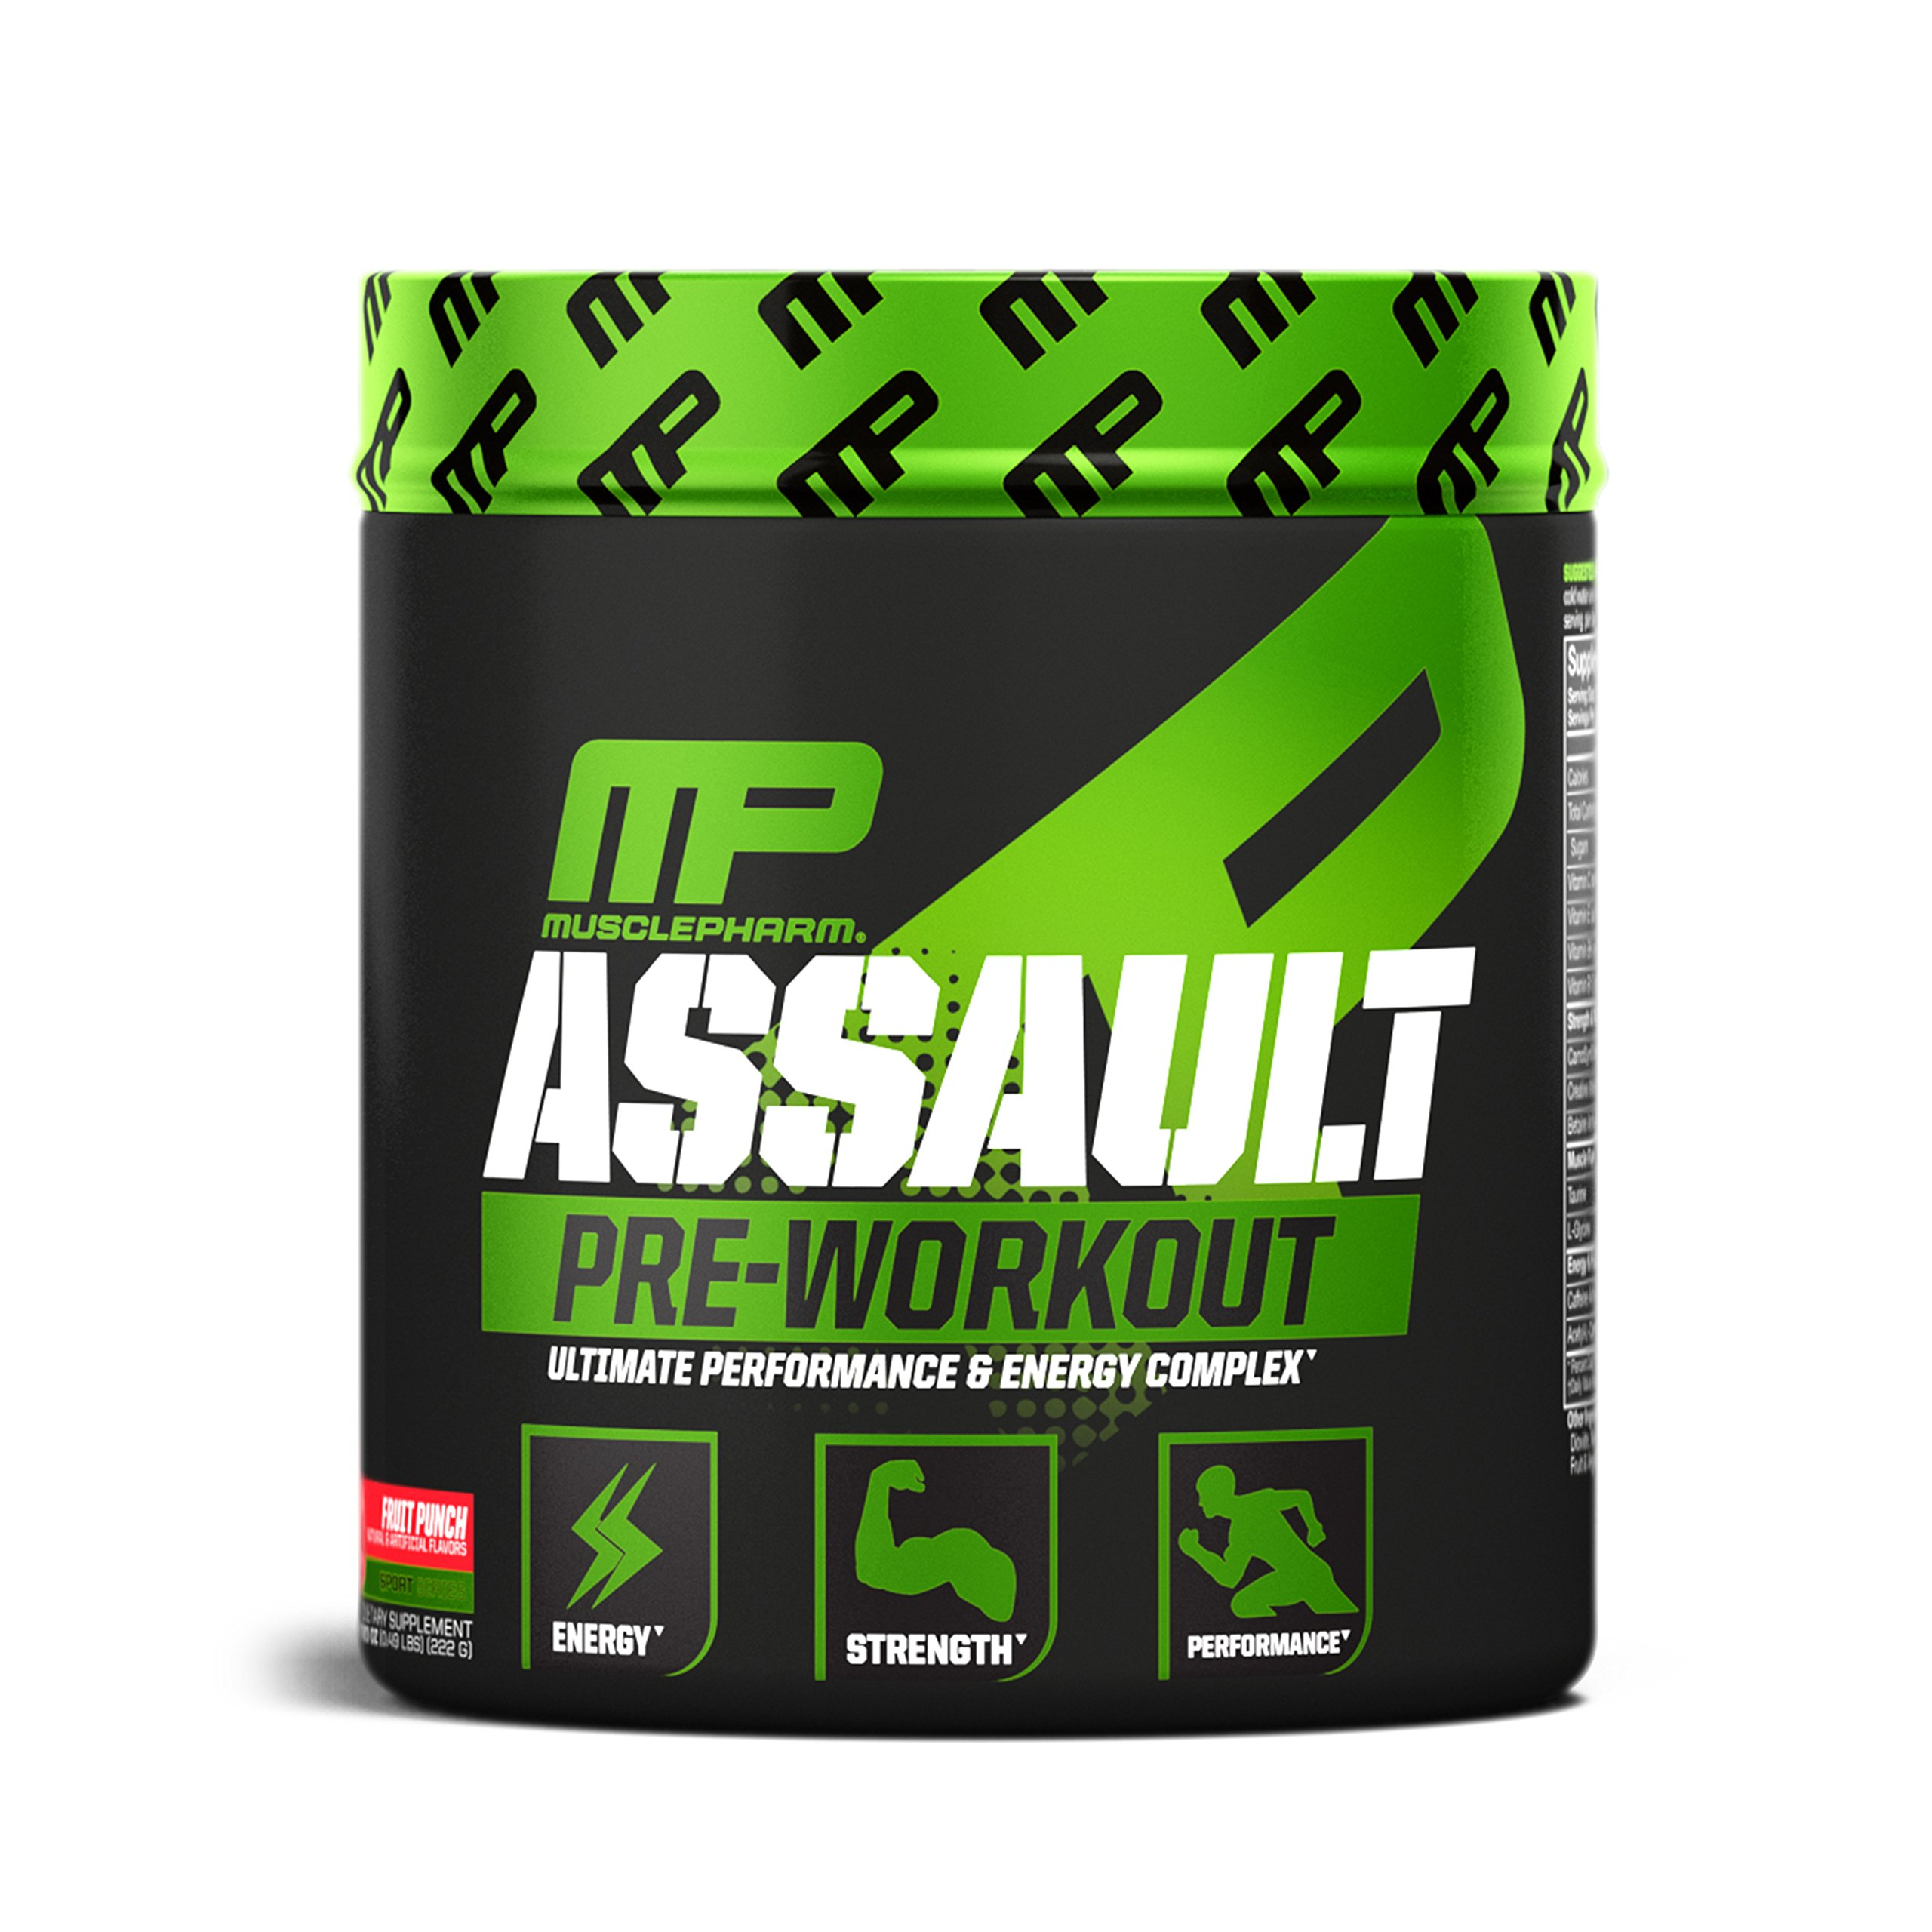 MusclePharm Assault Pre-Workout Powder, Pre-Workout Creatine for Energy, Focus, Strength, and Endurance with Creatine, Taurine, and Caffeine, Fruit Punch, 30 Servings by Muscle Pharm